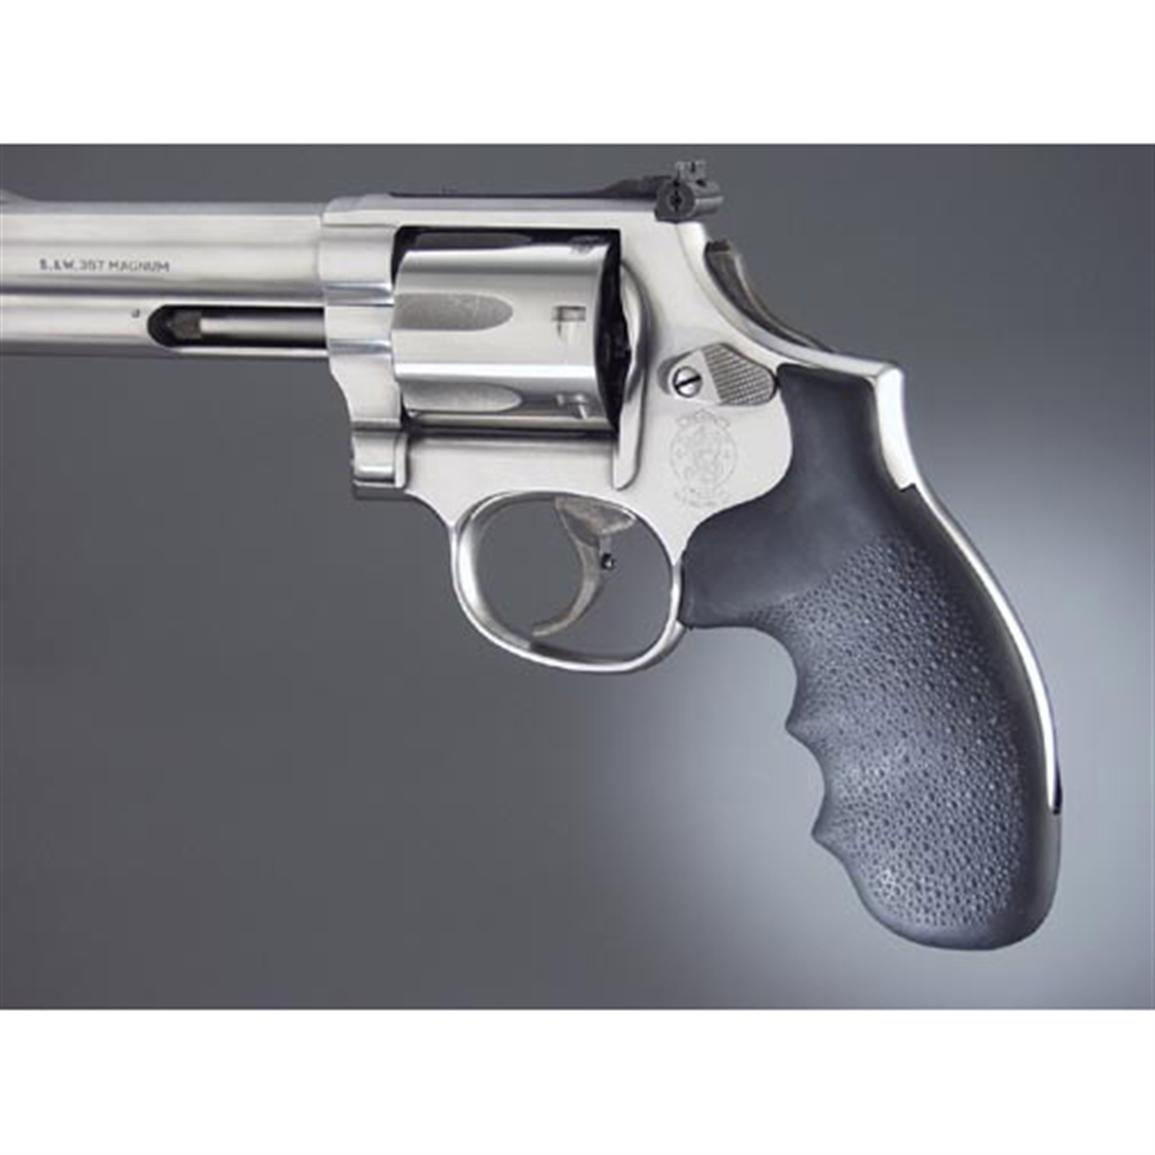 Hogue Monogrip Soft Rubber Grips With Finger Grooves, Smith & Wesson K or L Frame Round Butt